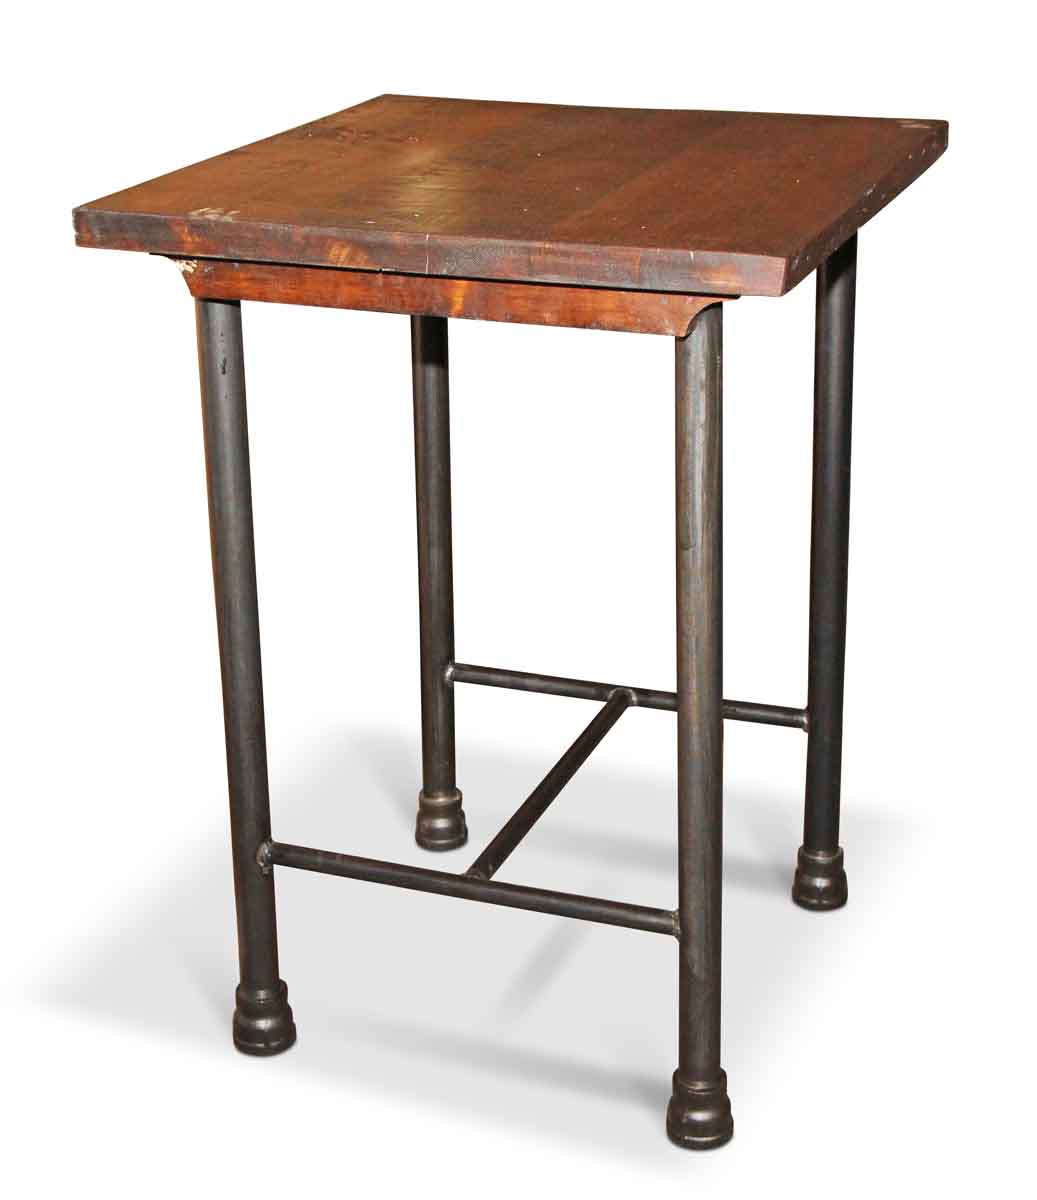 Table Carrée Cuisine: Square Kitchen Island Or Tall Side Table